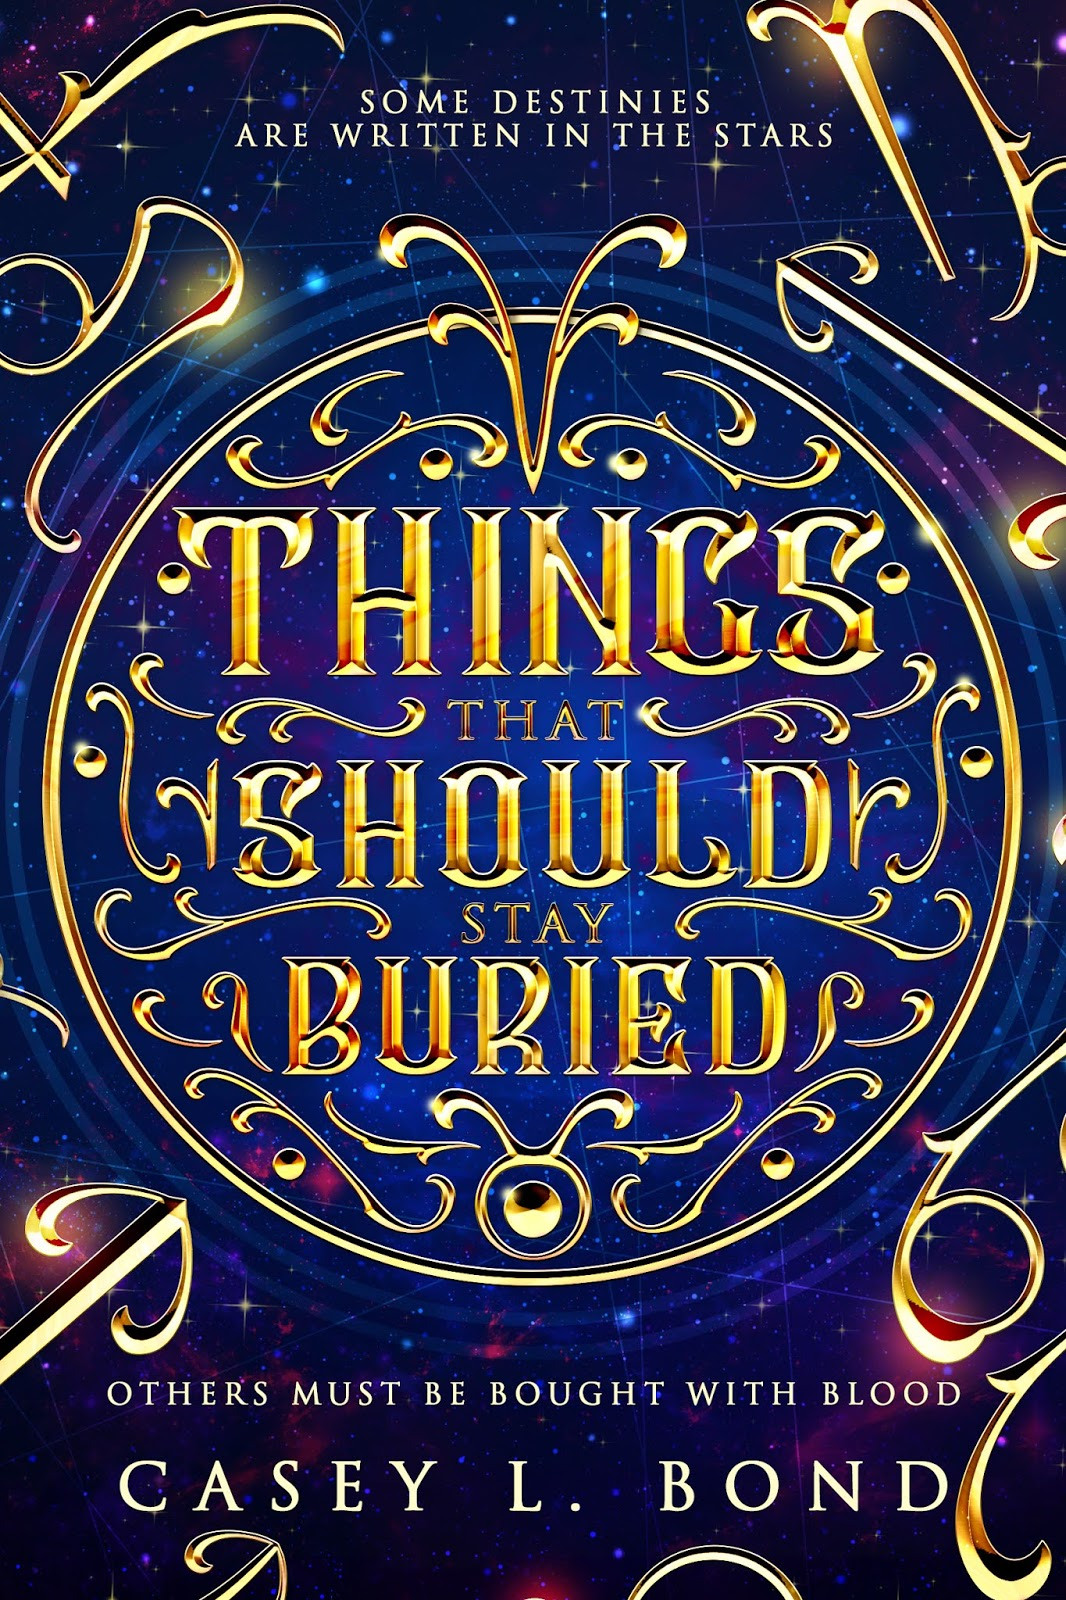 Things that Should Stay Buried by Casey L. Bond